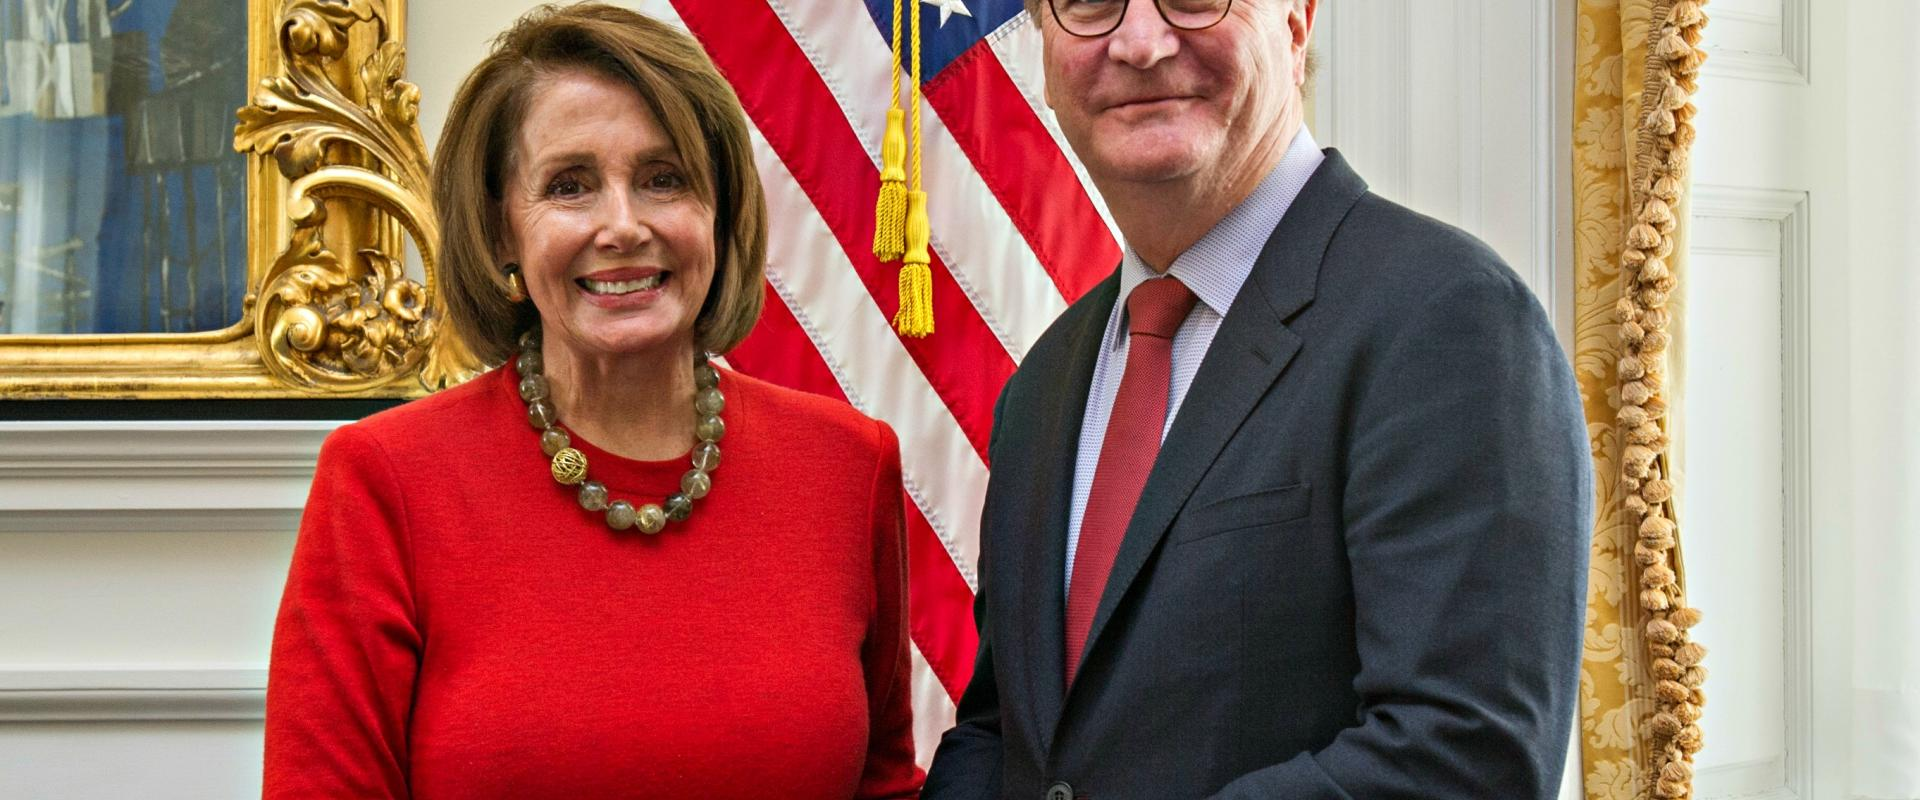 Congresswoman Pelosi meets with University of California, San Francisco Chancellor Sam Hawgood and senior UCSF officials to discuss federal investments in scientific research, breakthrough medical research at UCSF  on precision medicine, and Vice Presiden